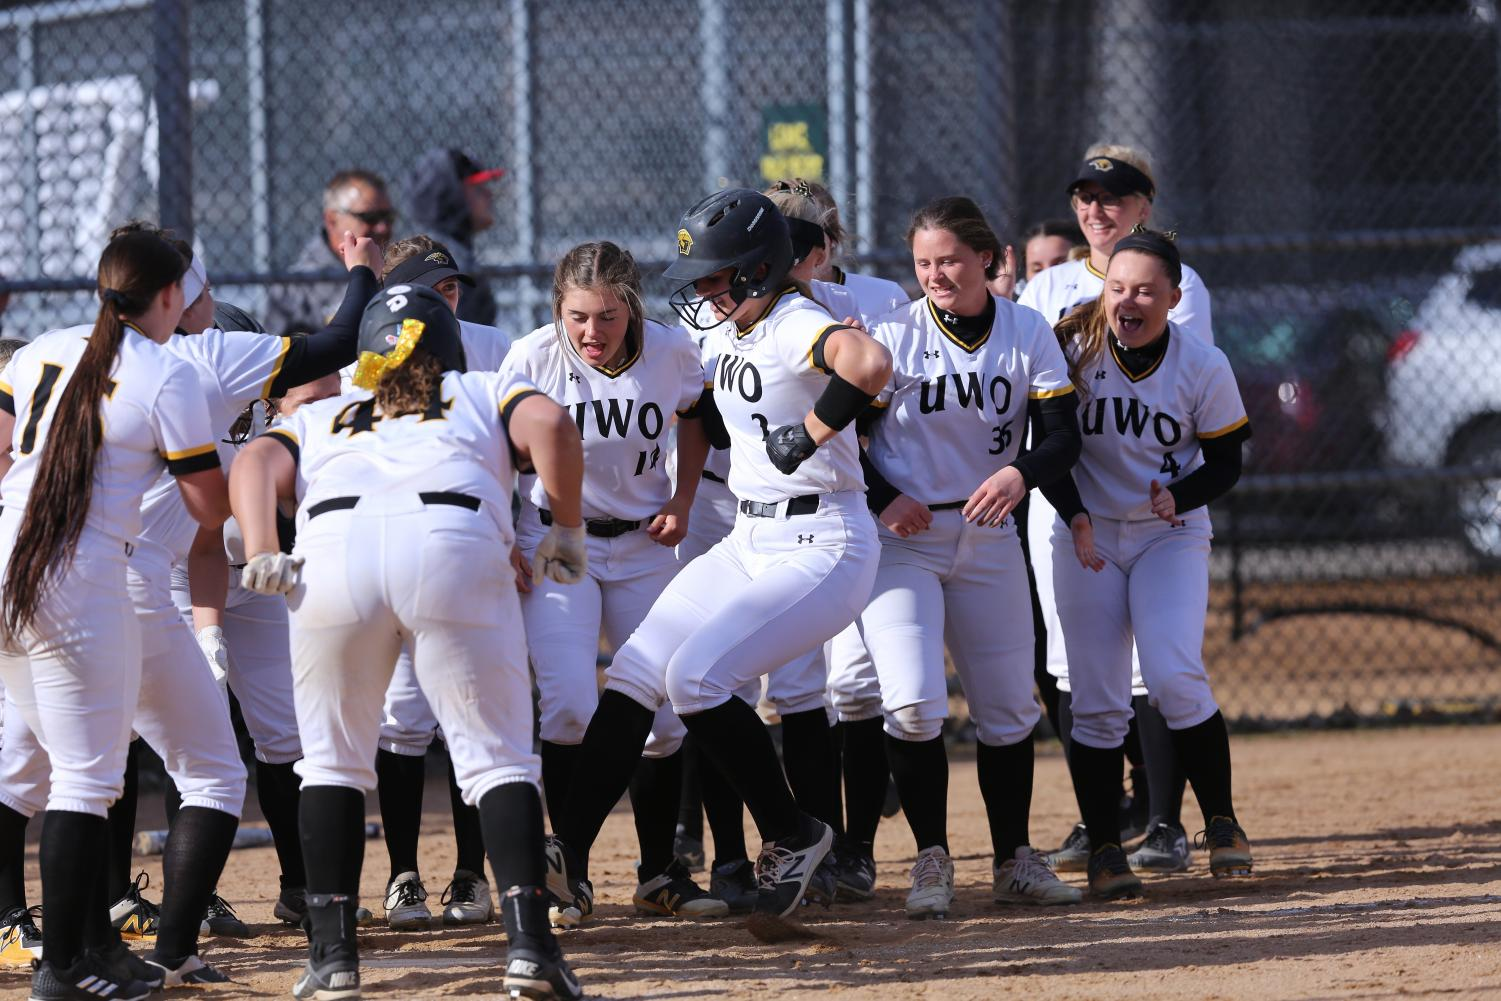 Abby Menting celebrates with her team at home plate after her fourth-inning homerun versus UW-Eau Claire.